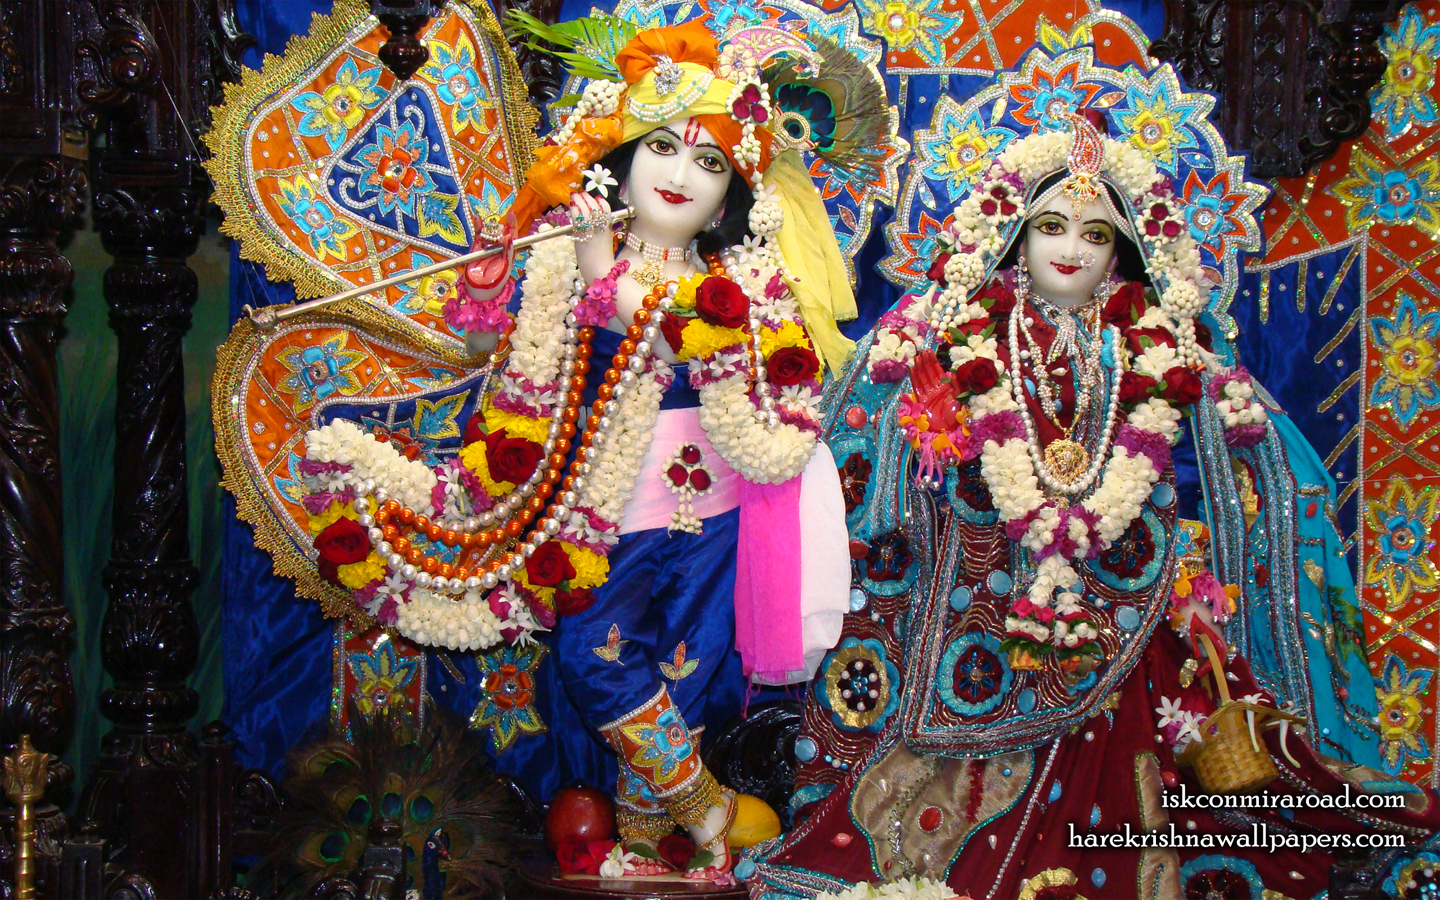 Sri Sri Radha Giridhari Wallpaper (018) Size 1440x900 Download